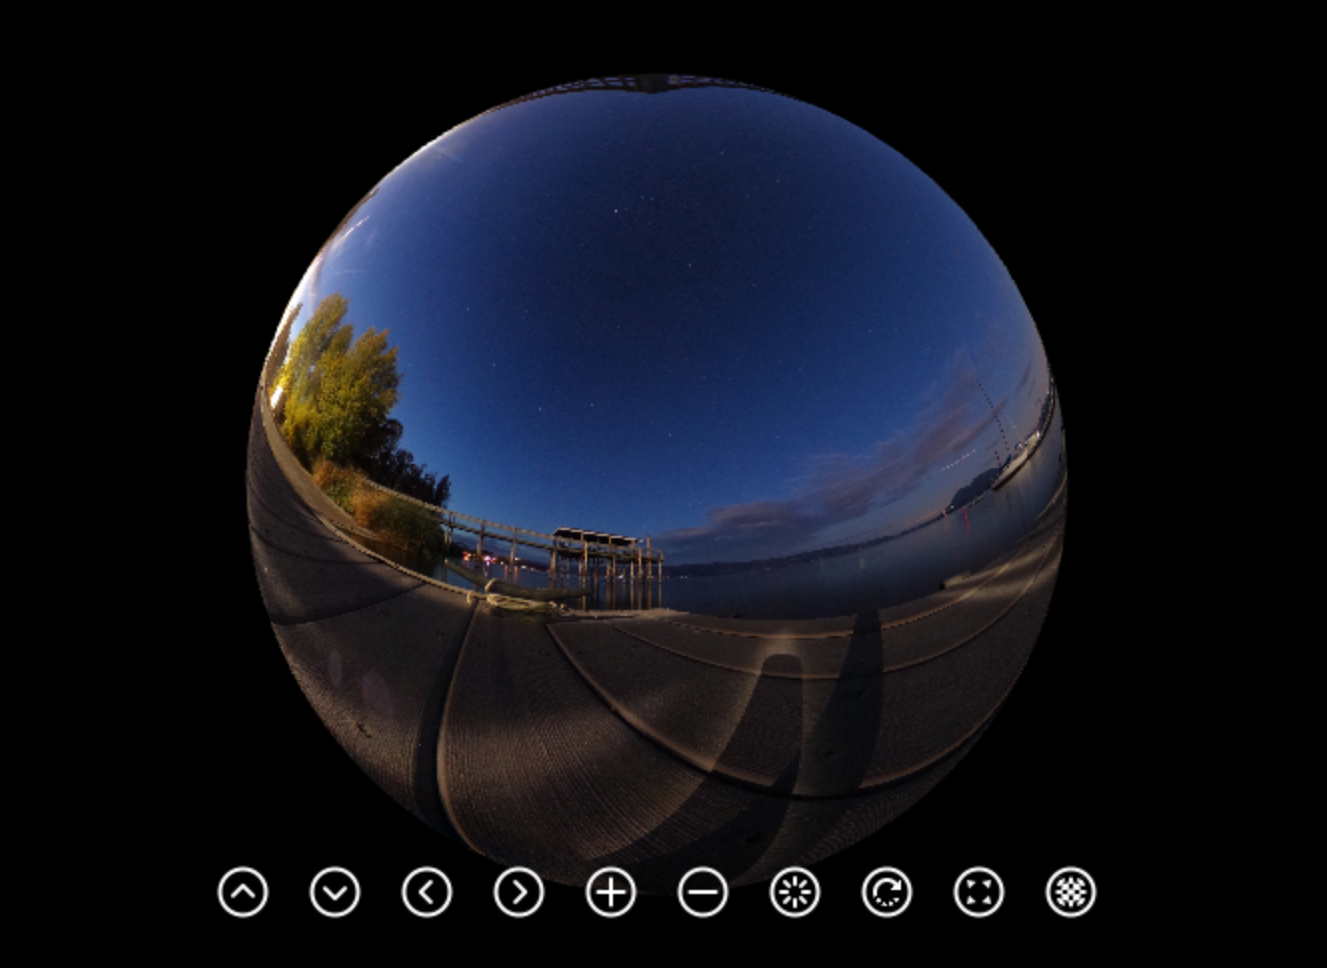 View 360 Photography Examples